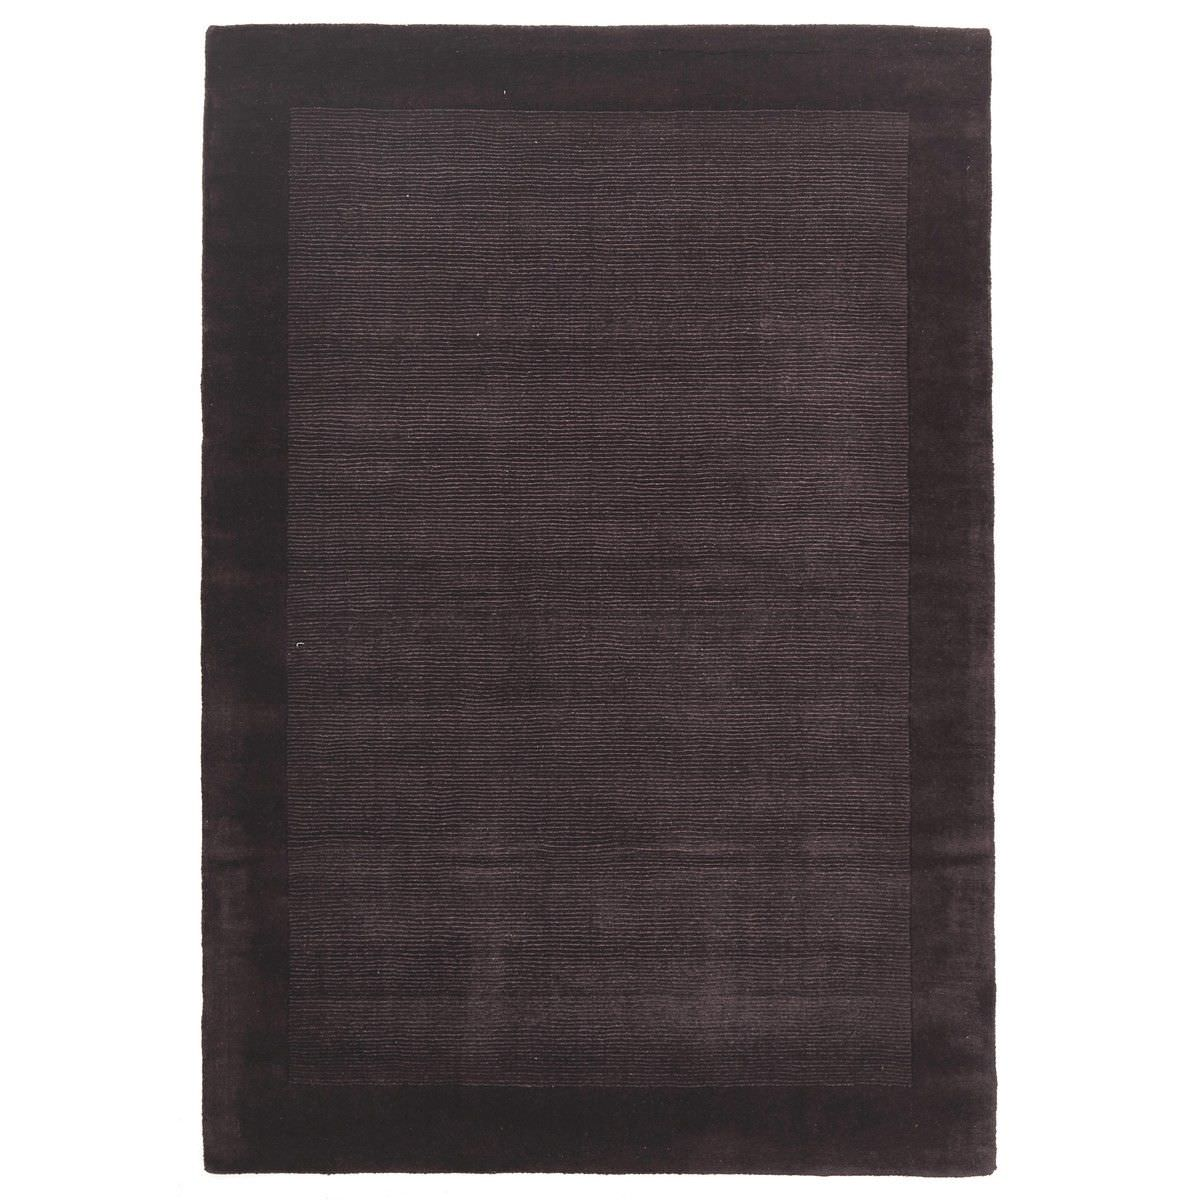 Luxe Hand Tufted Wool Runner Rug, 225x155cm, Eggplant